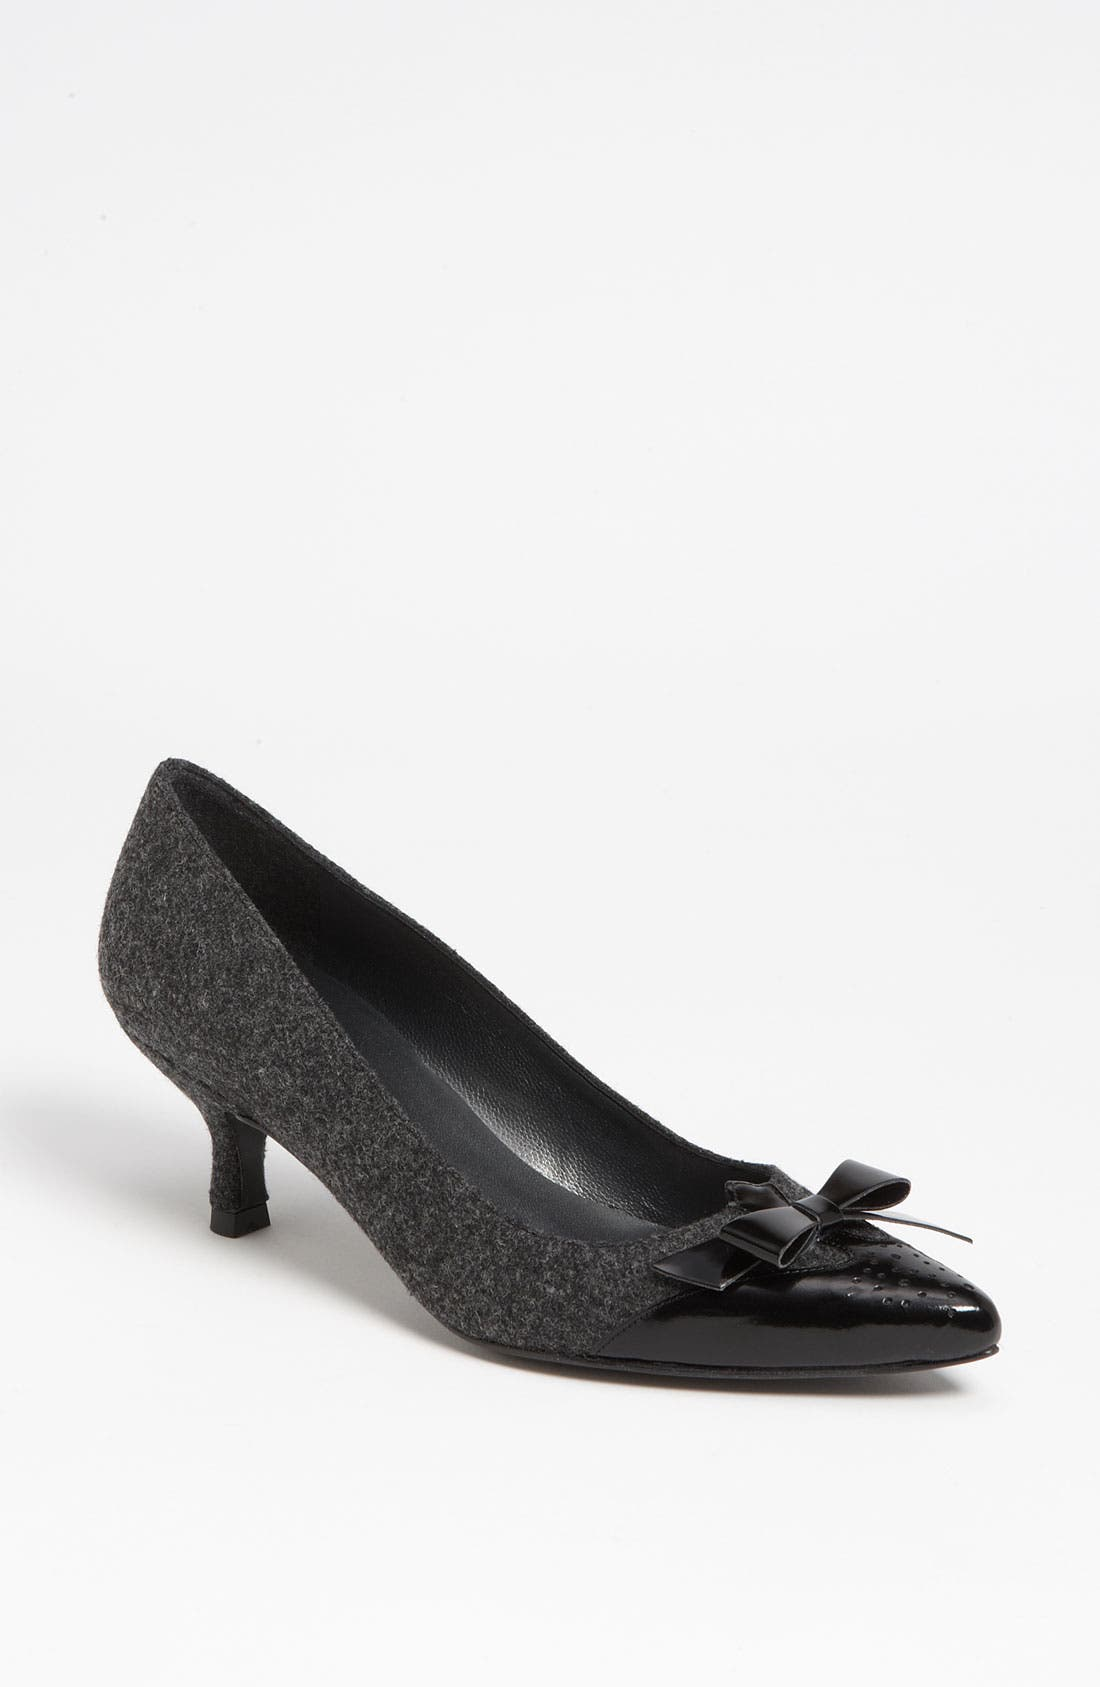 Alternate Image 1 Selected - Stuart Weitzman 'Daydream' Pump (Nordstrom Exclusive)